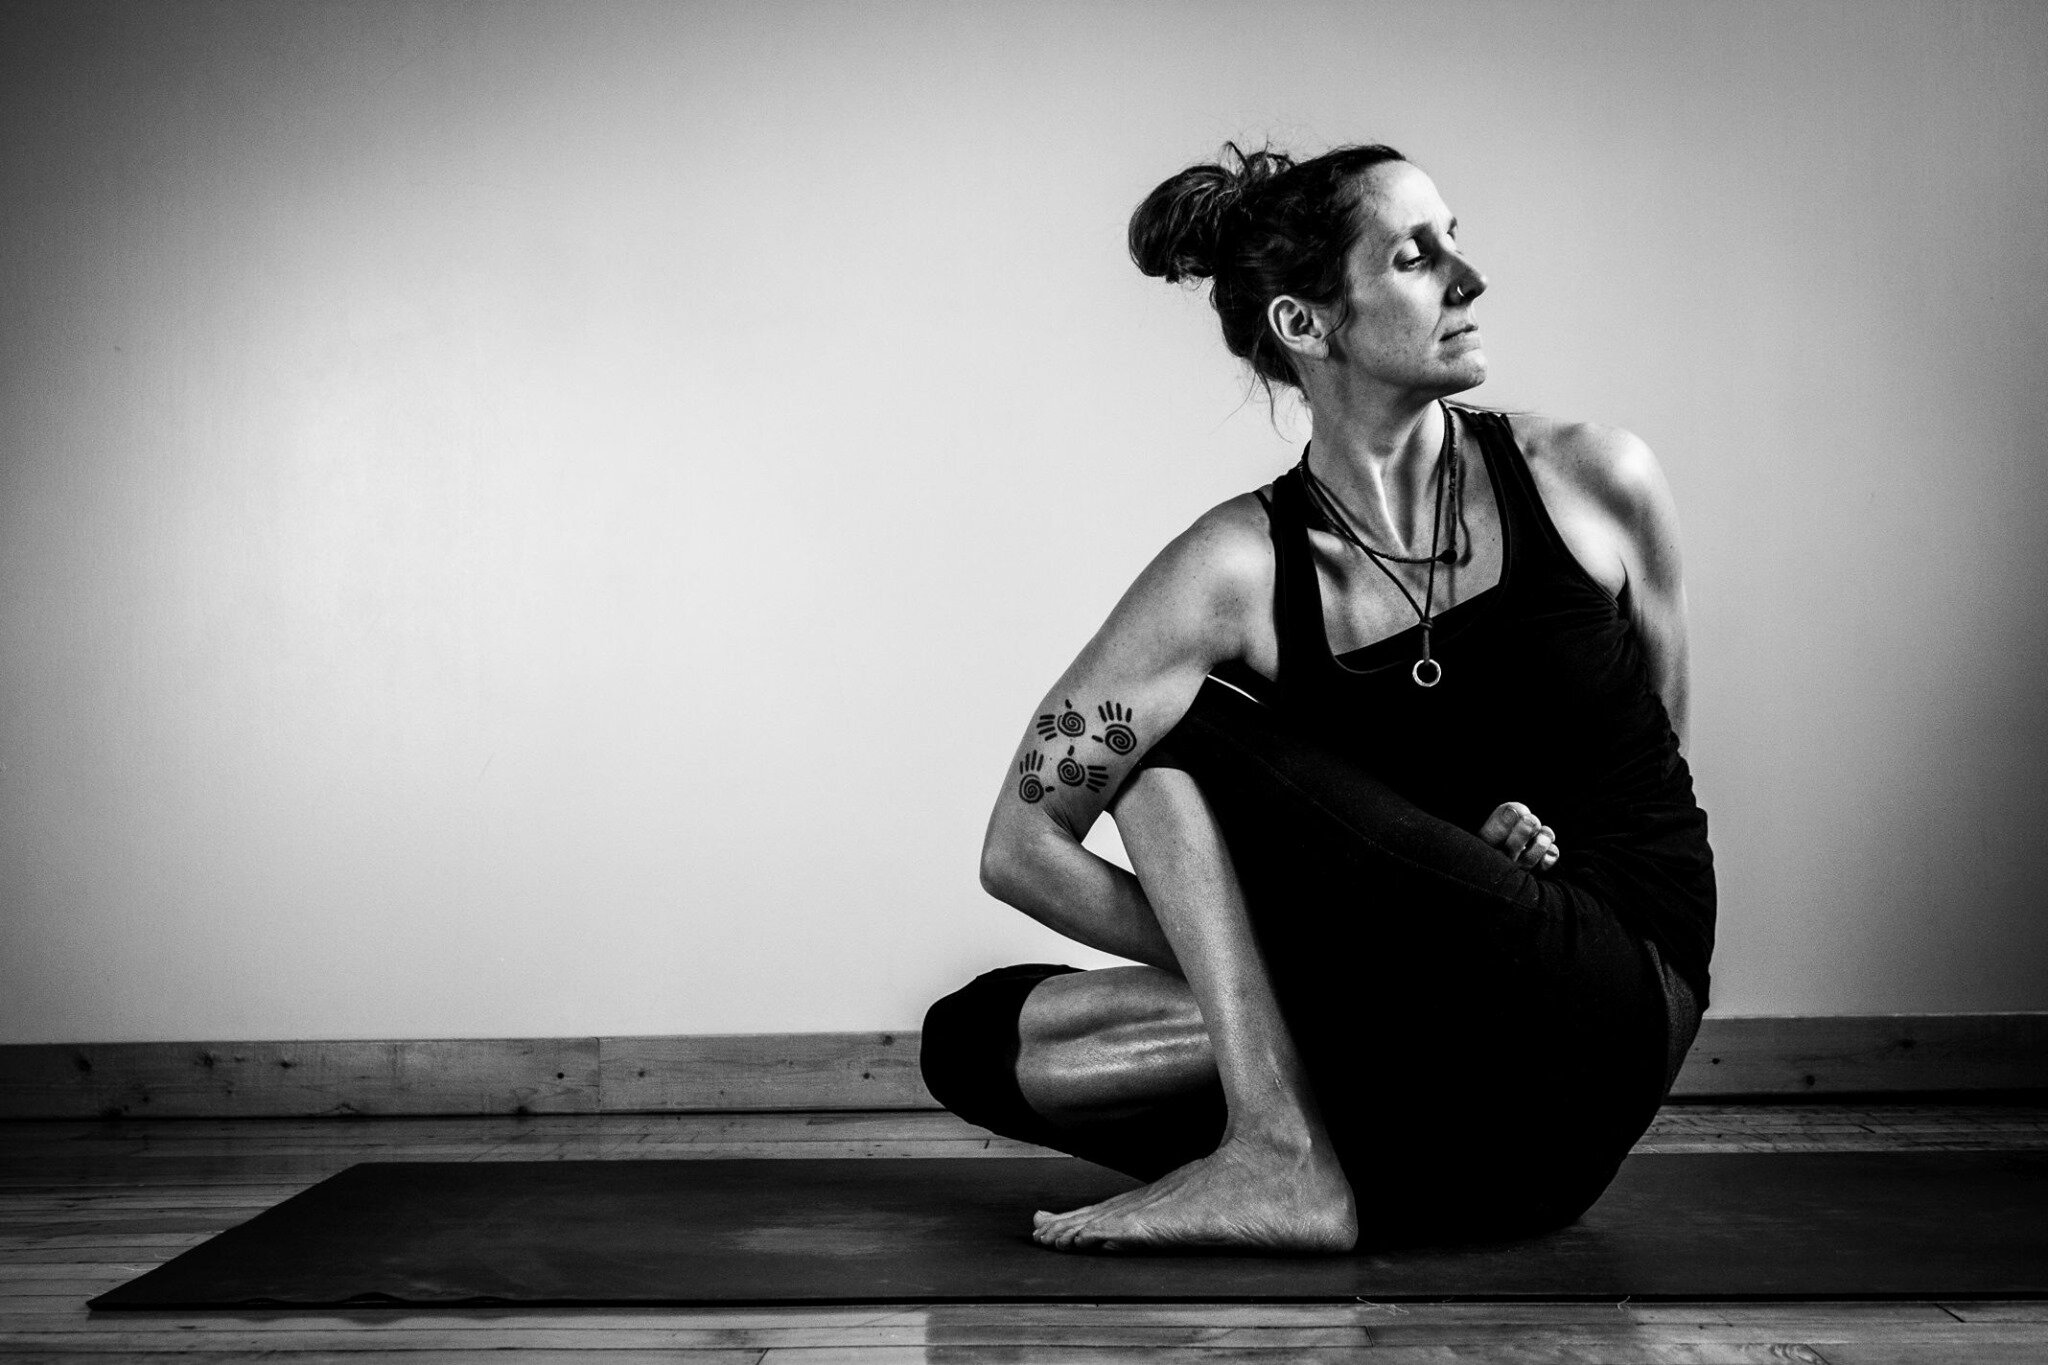 The Teacher - I began practising yoga in 2006 and immediately fell in love with the feeling of calm, peace, and just being at home within myself that it brought. As a mother of 4, it has become a way to drop in and reconnect with myself. Observing the changes, both mentally and physically, on and off the mat, I knew I was ready to go deeper with my practice. I completed my YTT200 in 2008 at 5 Elements Yoga and Pilates in Brampton with Michelle Cormack. I discovered Yin Yoga in 2009 and was right away intrigued by it's lineage and healing elements that were drawn from the practice of Chinese medicine. The quieter, slower pace brought a great balance to my yang practice, and life. Over the years, I have continued learning through various teachers, mostly following the Ashtanga and Yin lineages. Every teacher has brought a new element to my practice, and I am grateful for each of them. In 2015 I complete my SUP Yoga teacher training with Stand Up Paddle Vancouver. This practice taught me the importance of being present and truly in my body. With the added element of fun. Since 2016, I have had the privilege and honour to teach along side my first teacher, Michelle Cormack, sharing her 200 YTT curriculum, taking people to the next level of their practice. Yoga is a constant journey of self discovery and growth. As I continue to learn and grow within my own practice, it is my intention to share and help others with theirs.